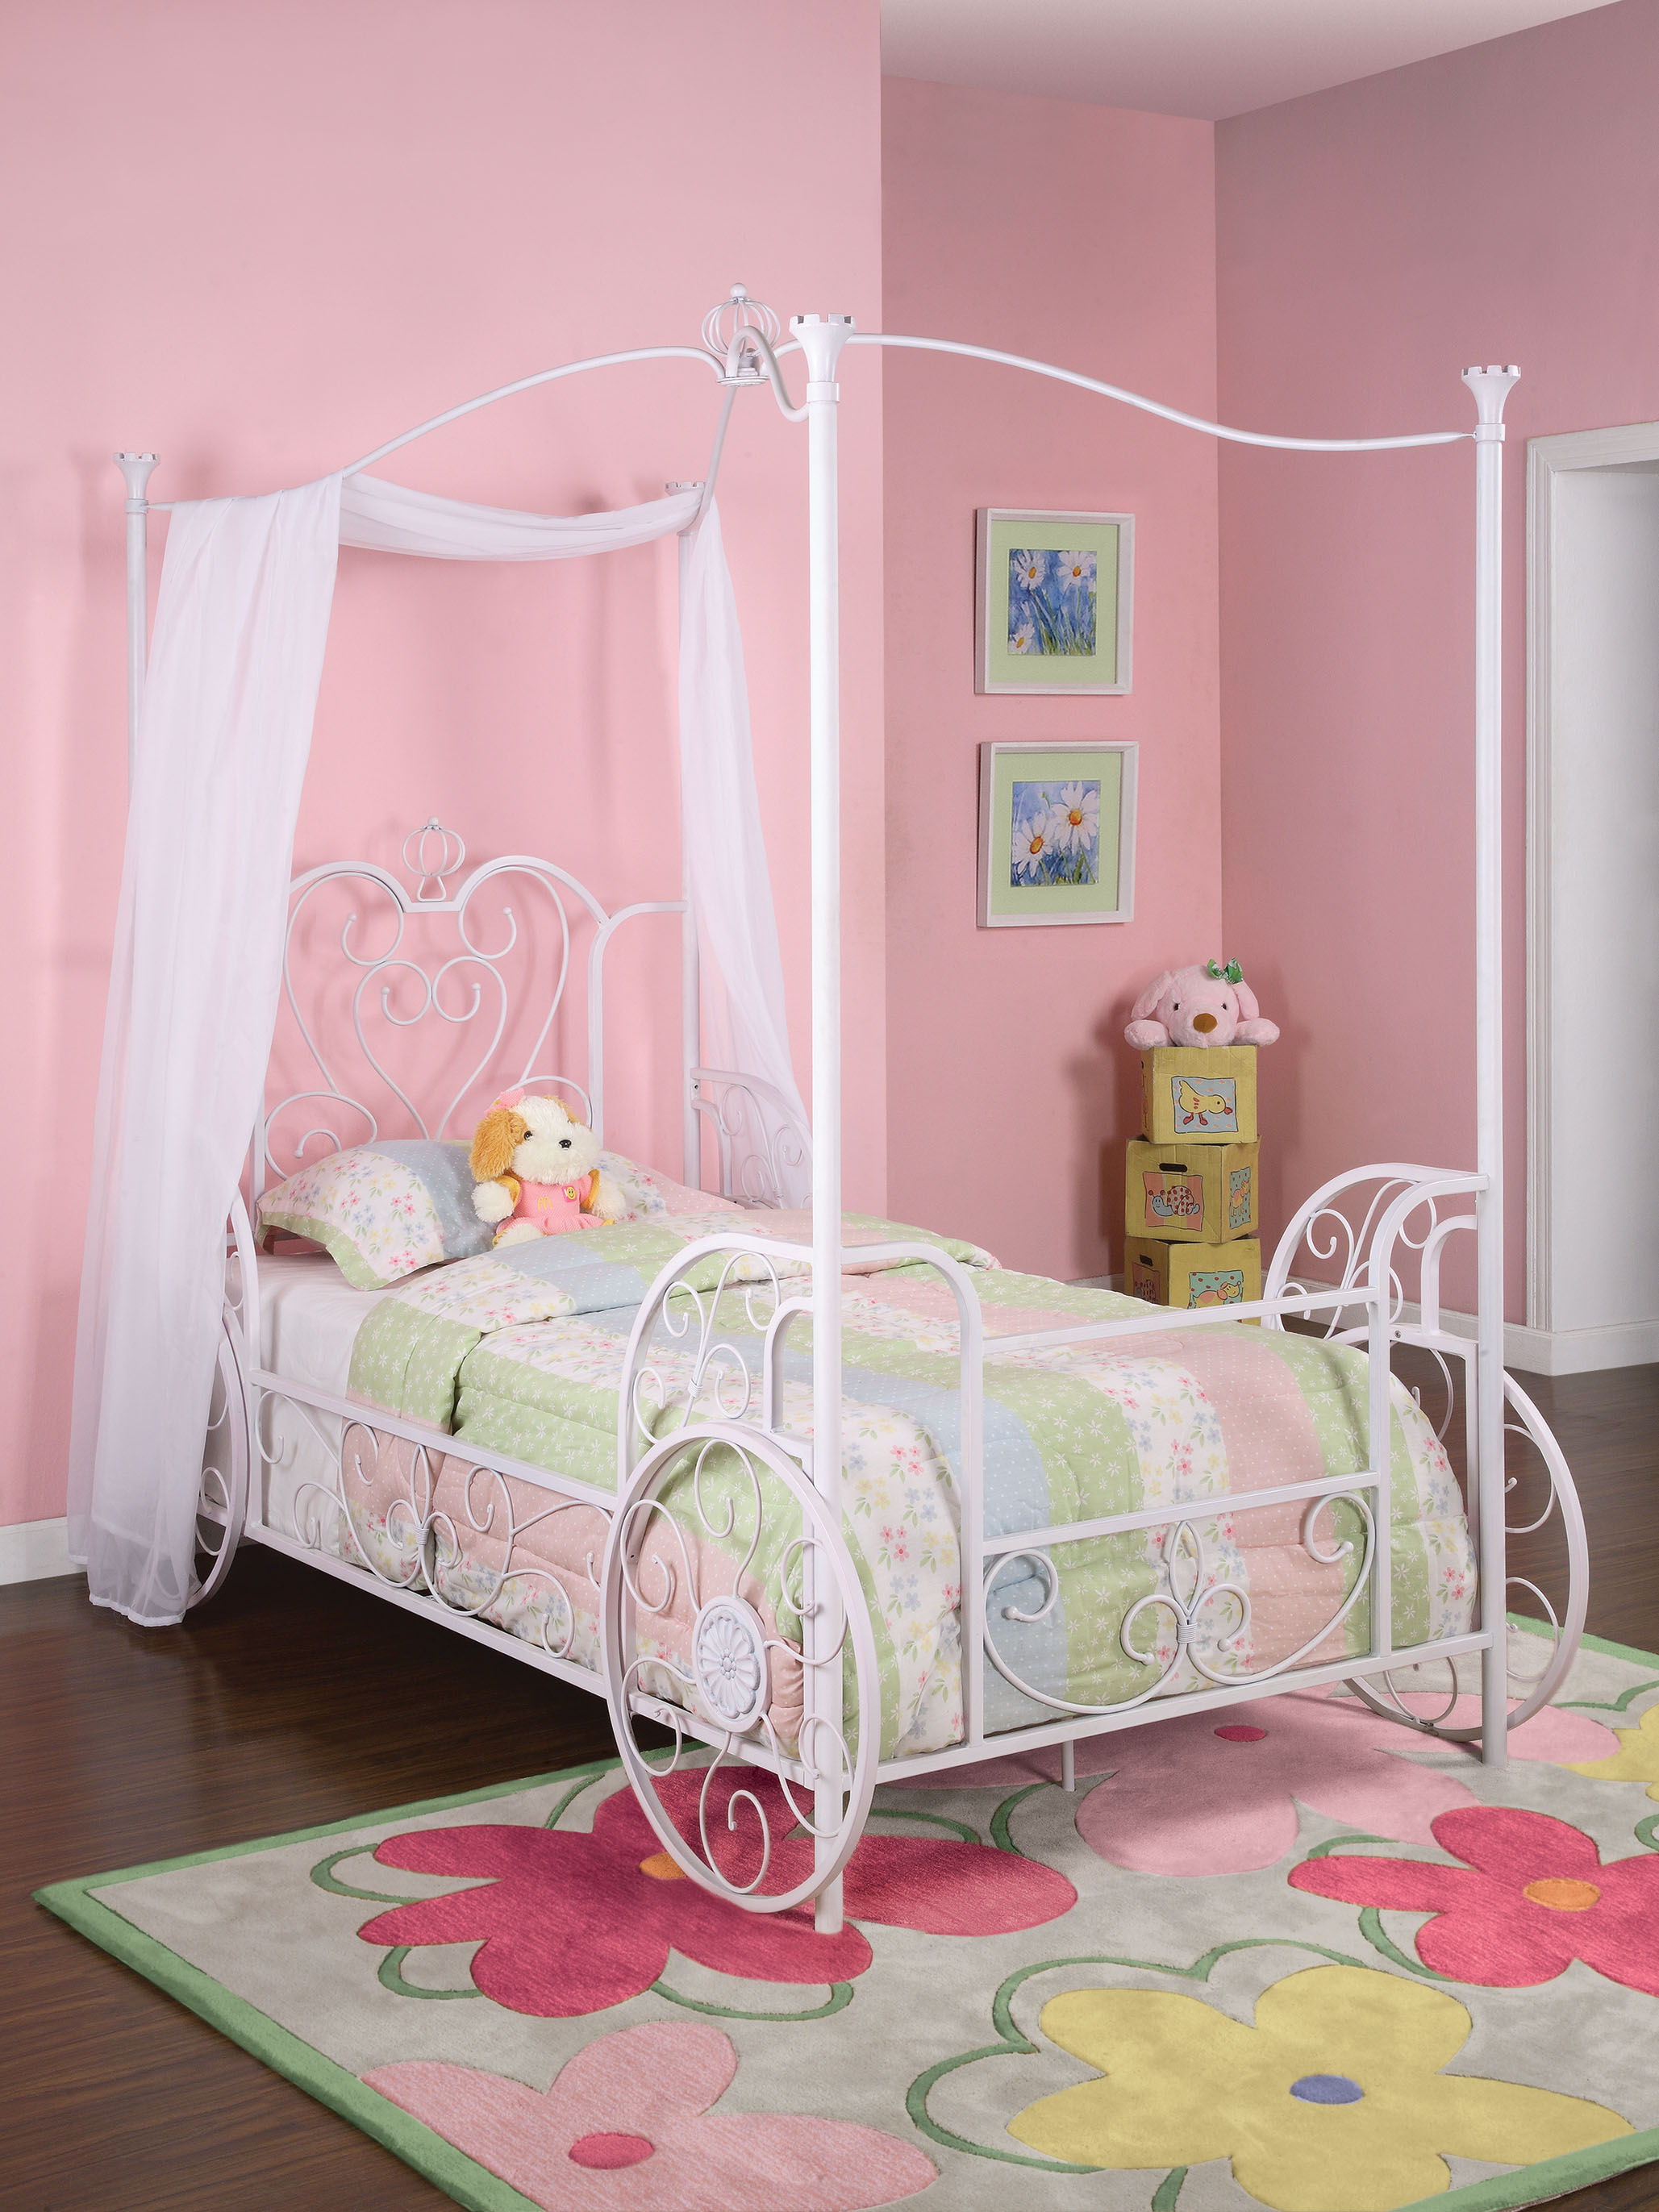 & Powell Carriage Twin Metal Canopy Bed Antique White - Walmart.com